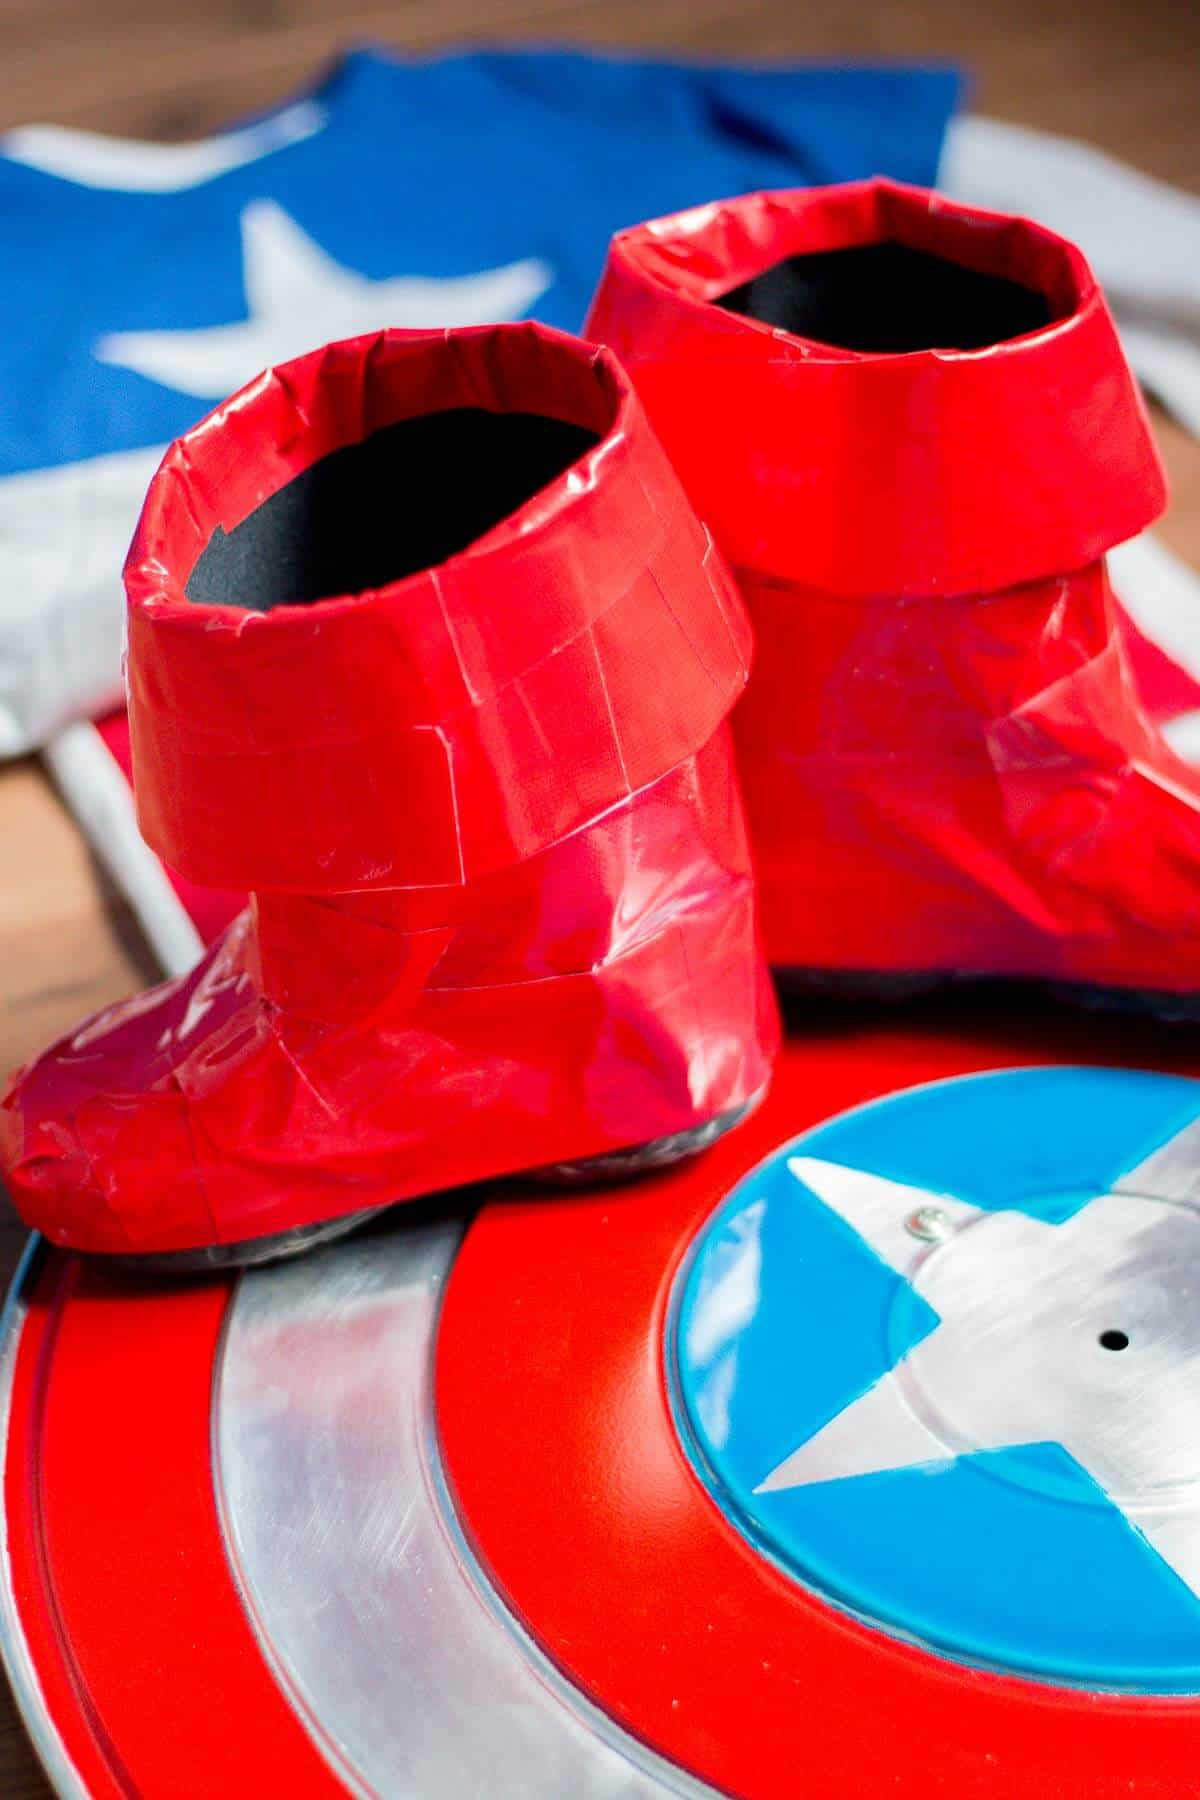 Homemade Captain America Boots made from duct tape on a homemade Captain America shield